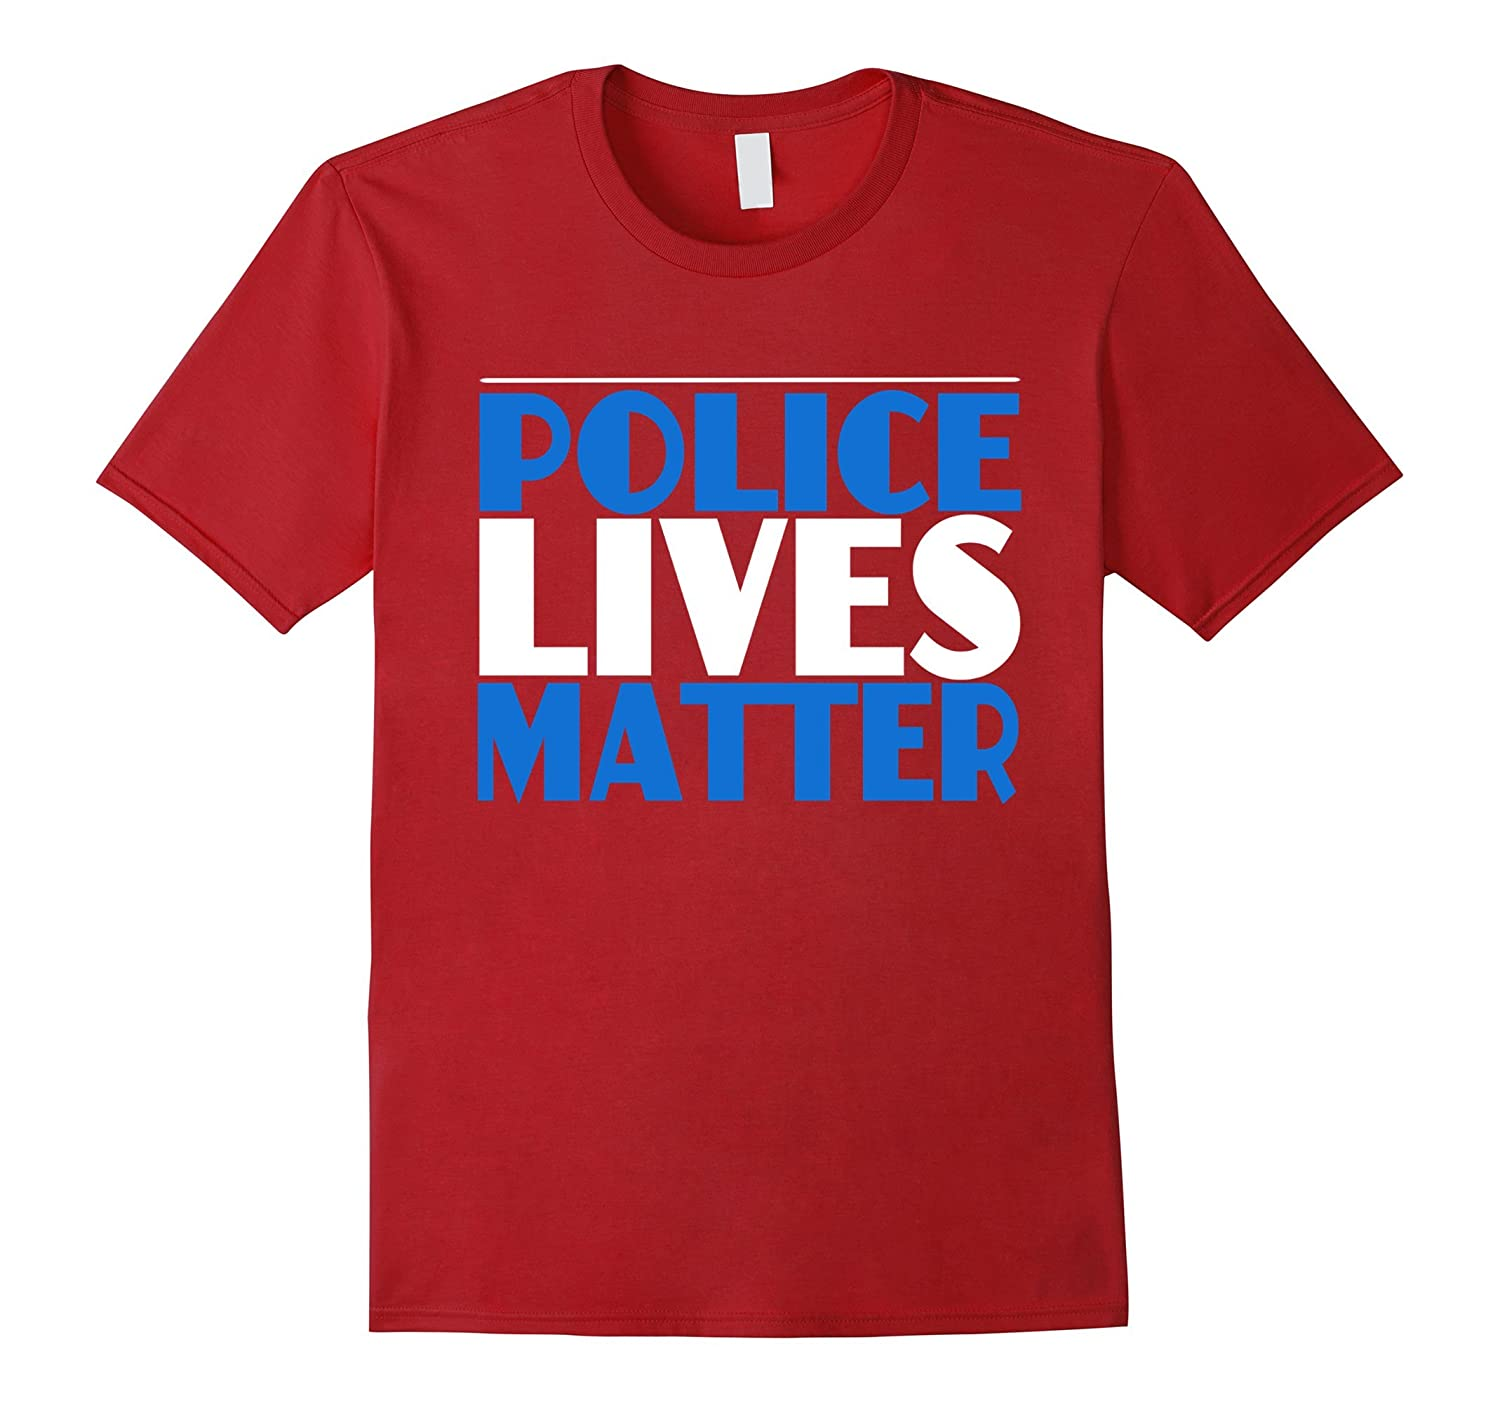 Police Lives Matter T-Shirt - Police Officers Dallas, TX-CL